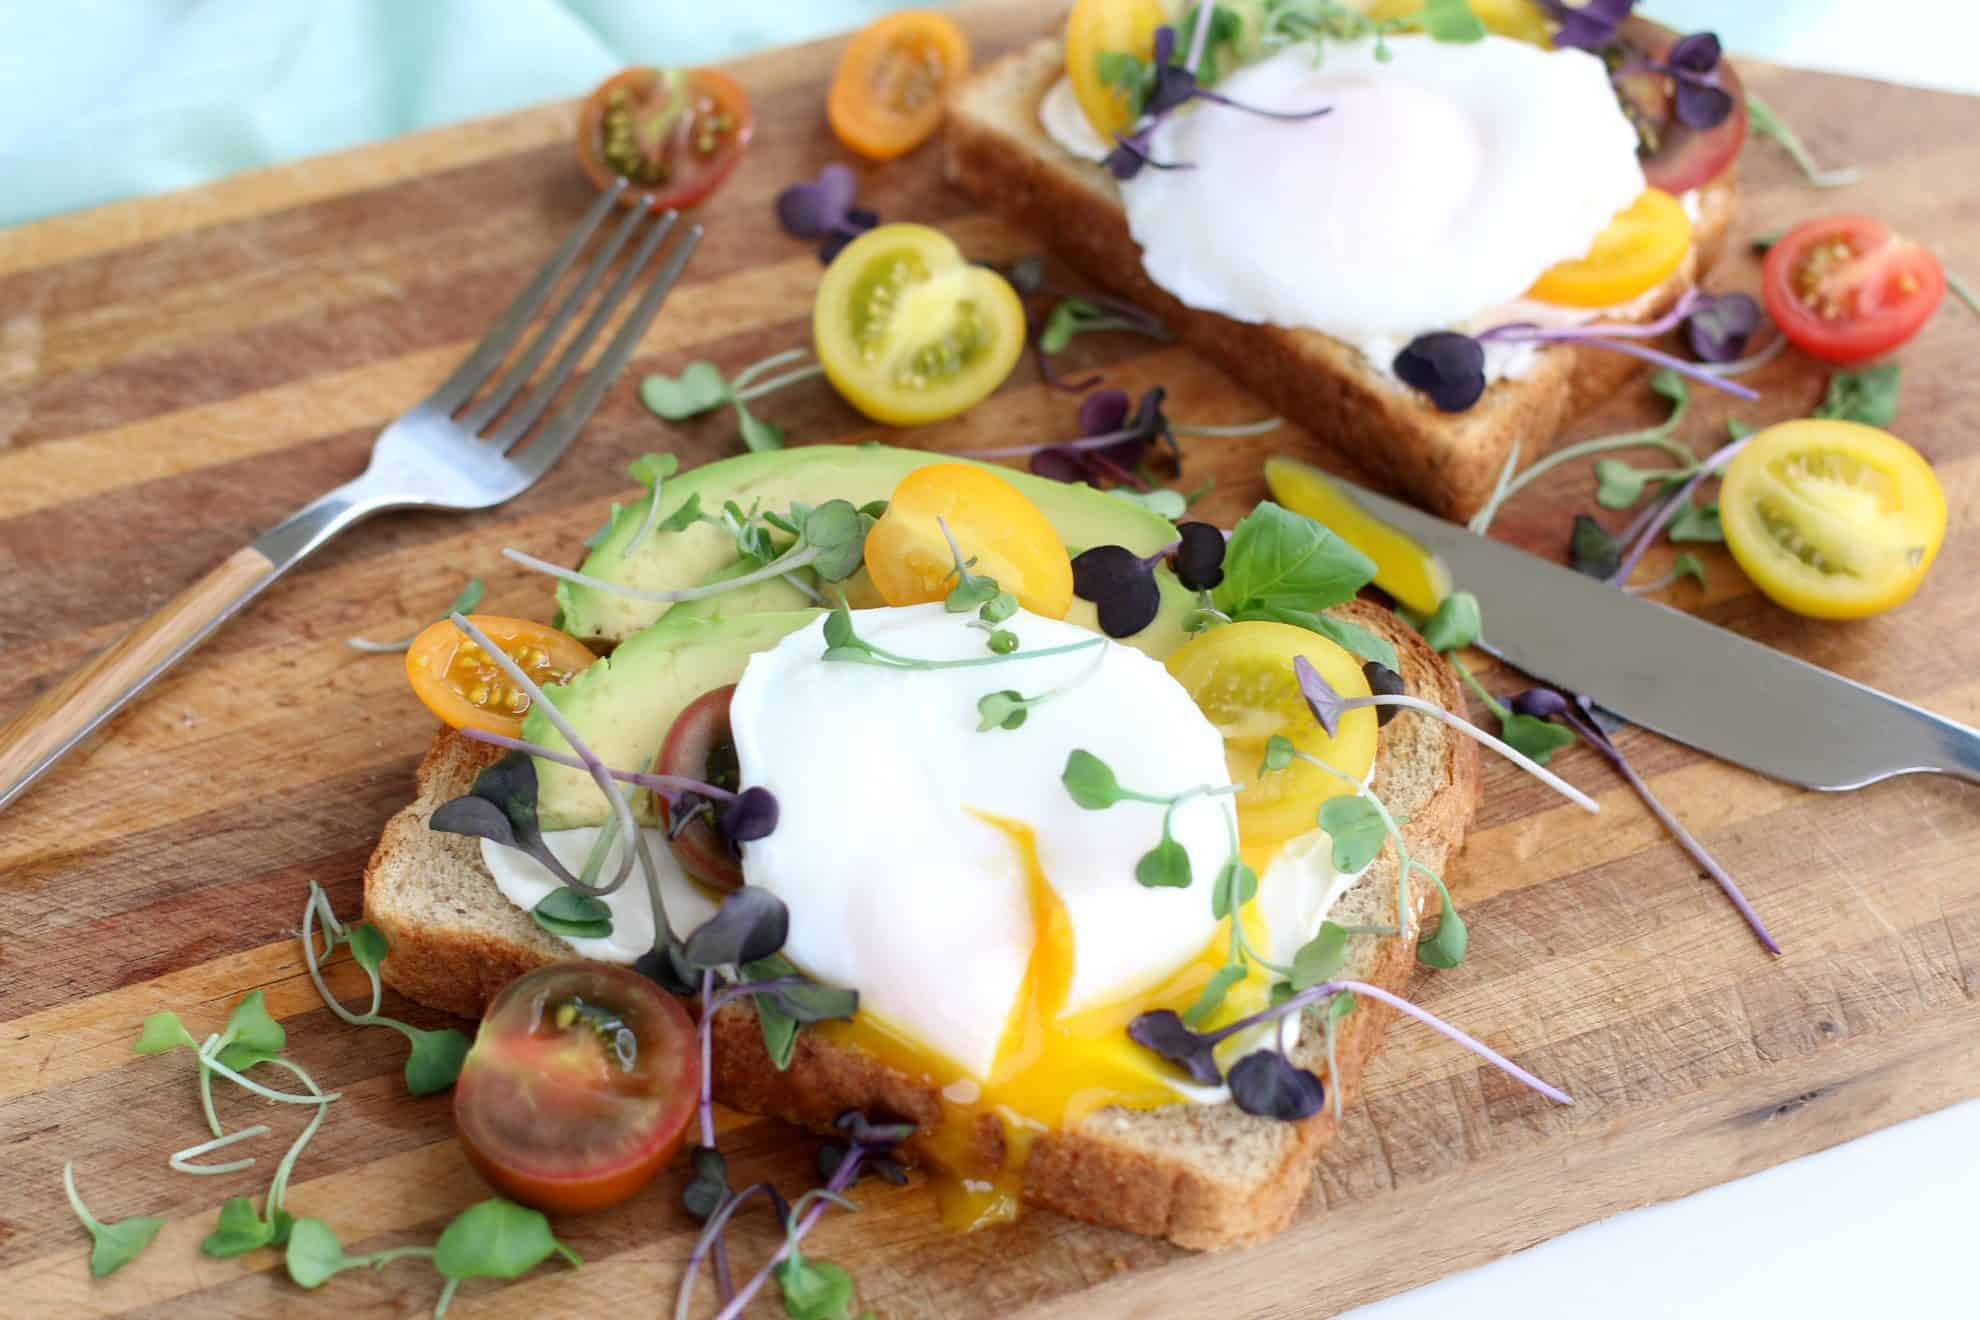 Poached egg on avocado toast garnished with micro greens and heirloom tomatoes